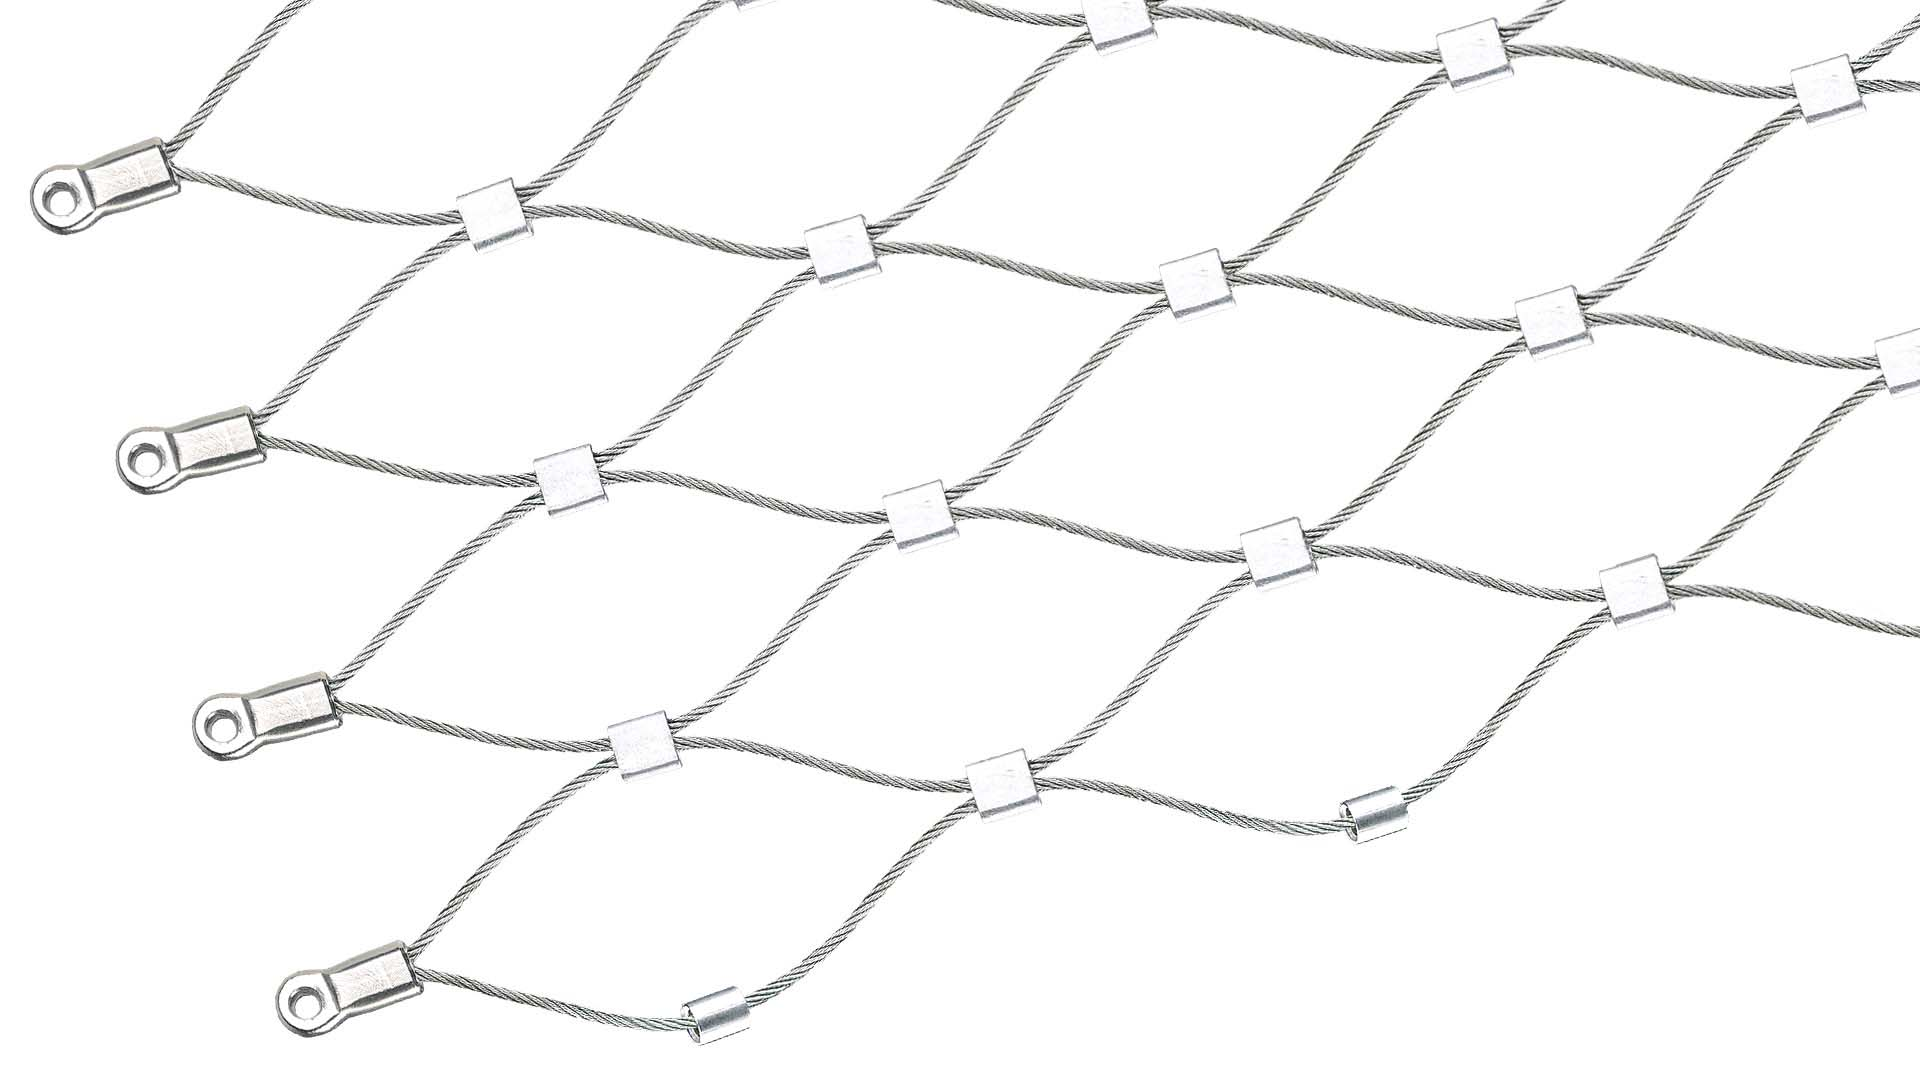 Stainless steel wire mesh by Jakob Rope Systems